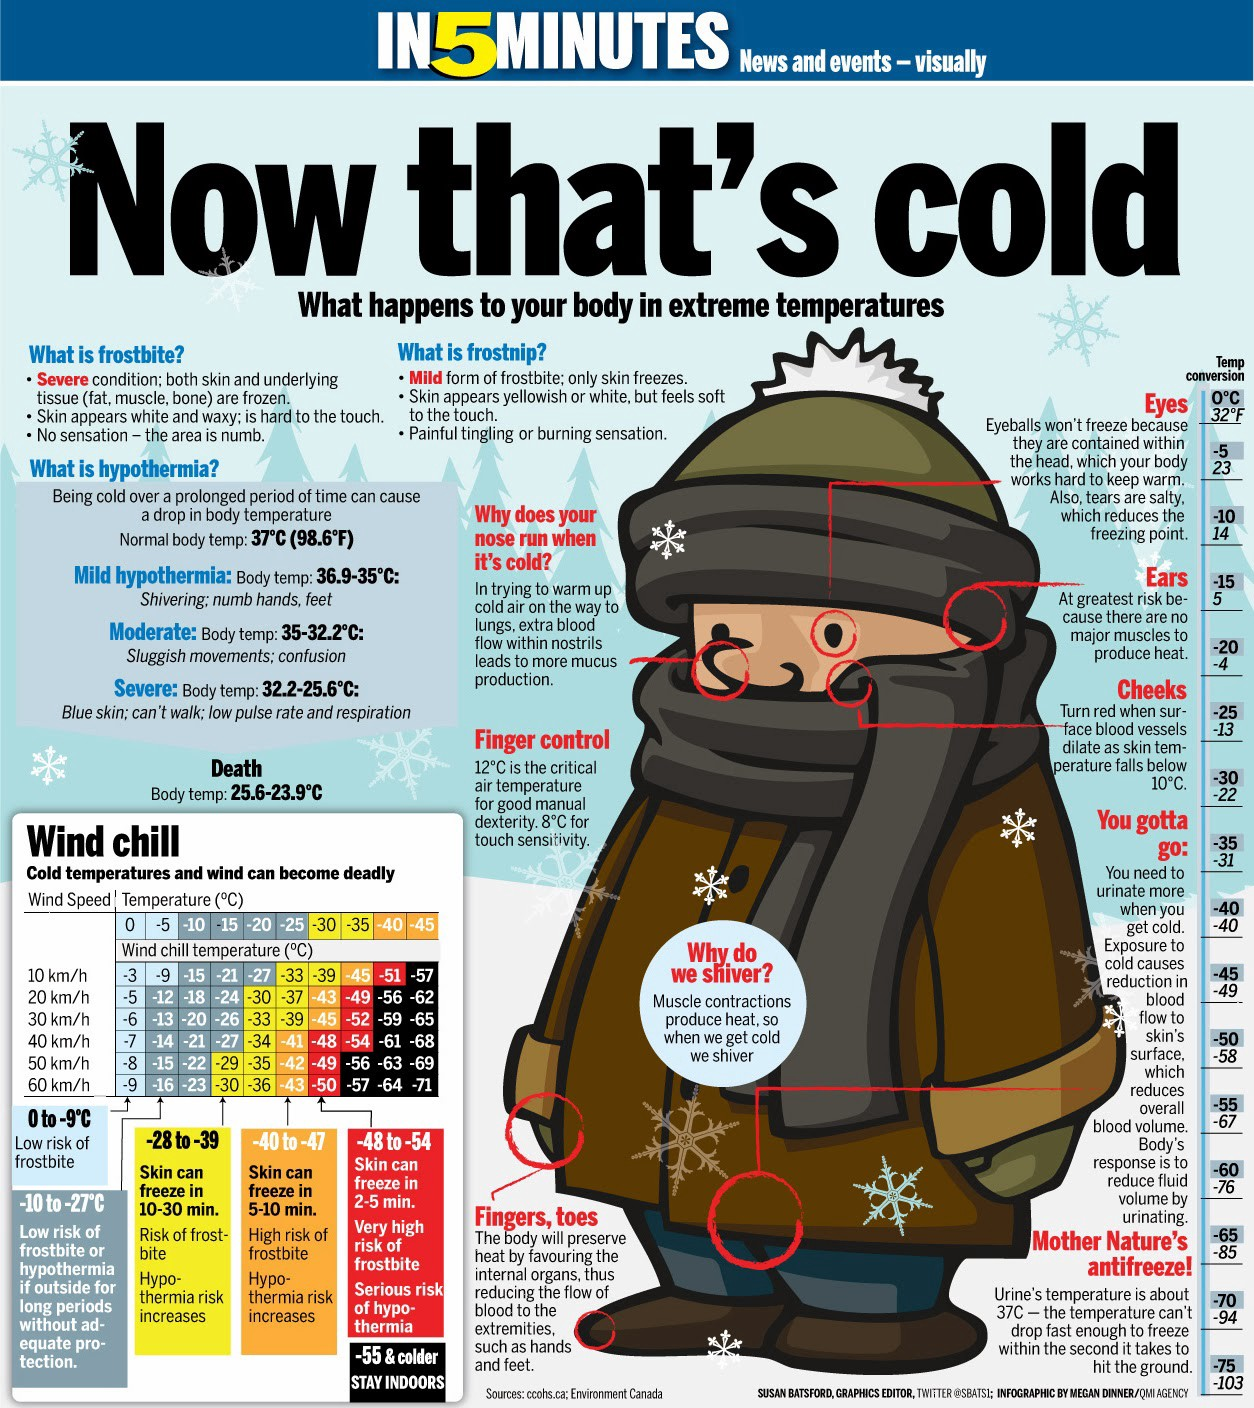 Handy Facts About Hypothermia Frostbite And Other Cold